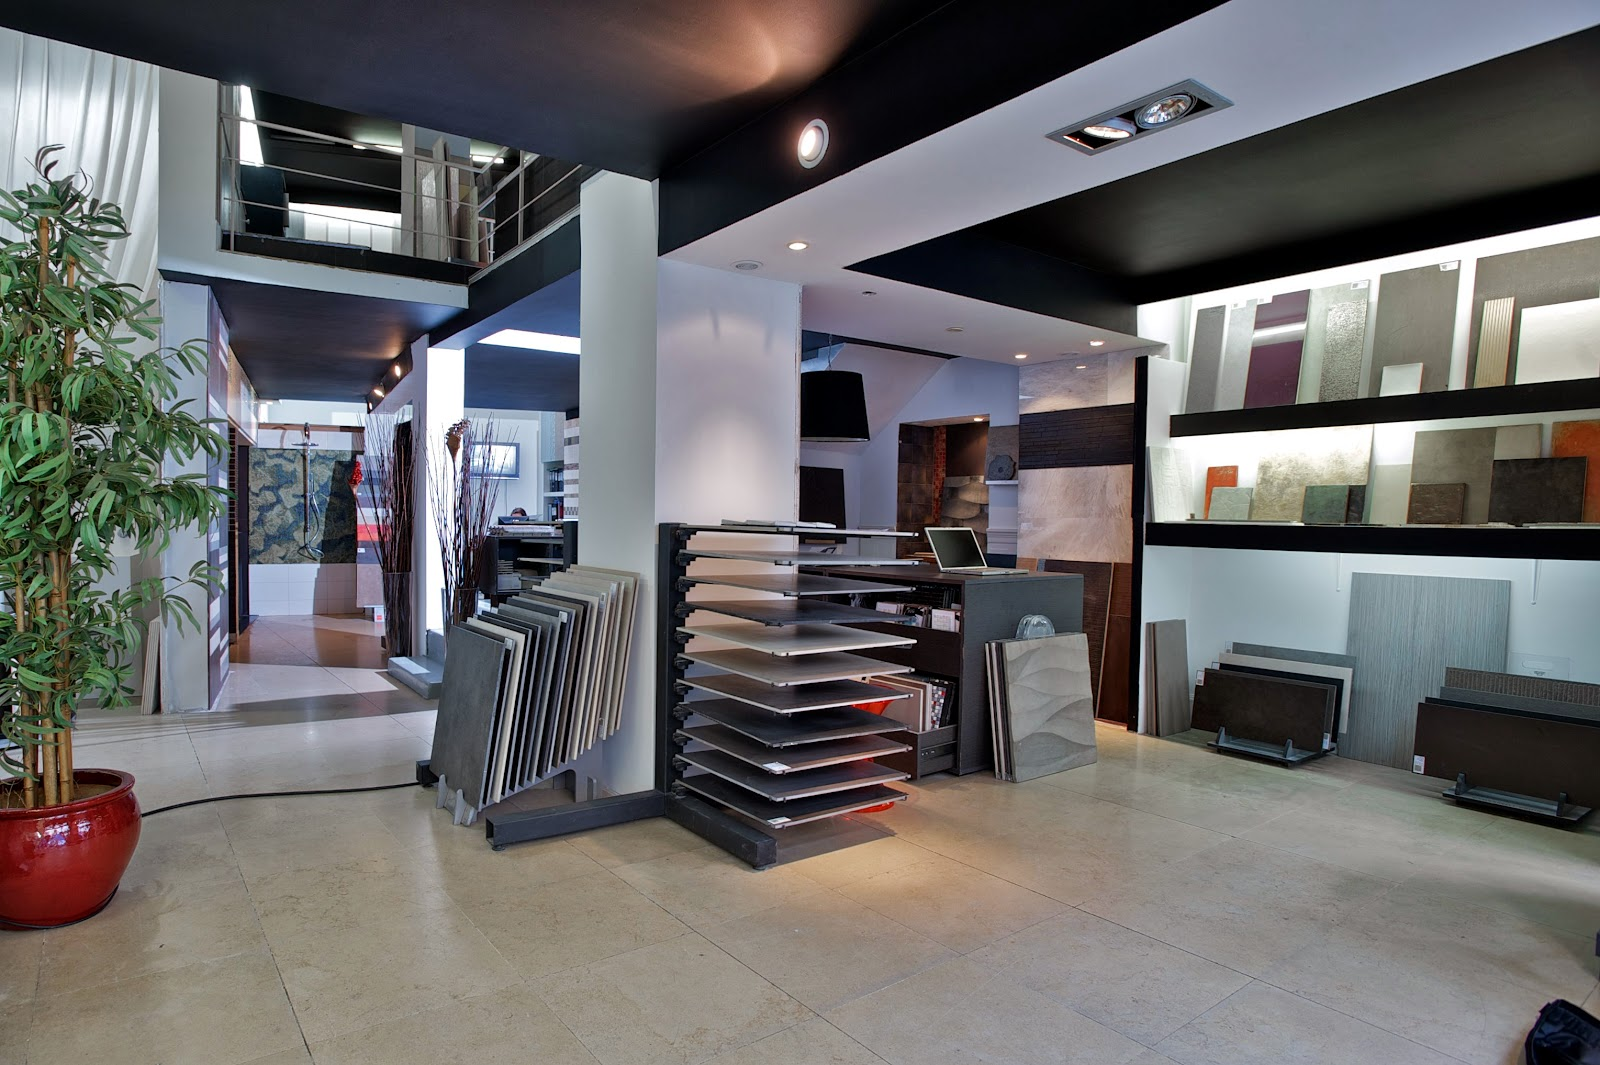 Casabagno casabagno magasin de carrelage haut de gamme for Carrelage paris